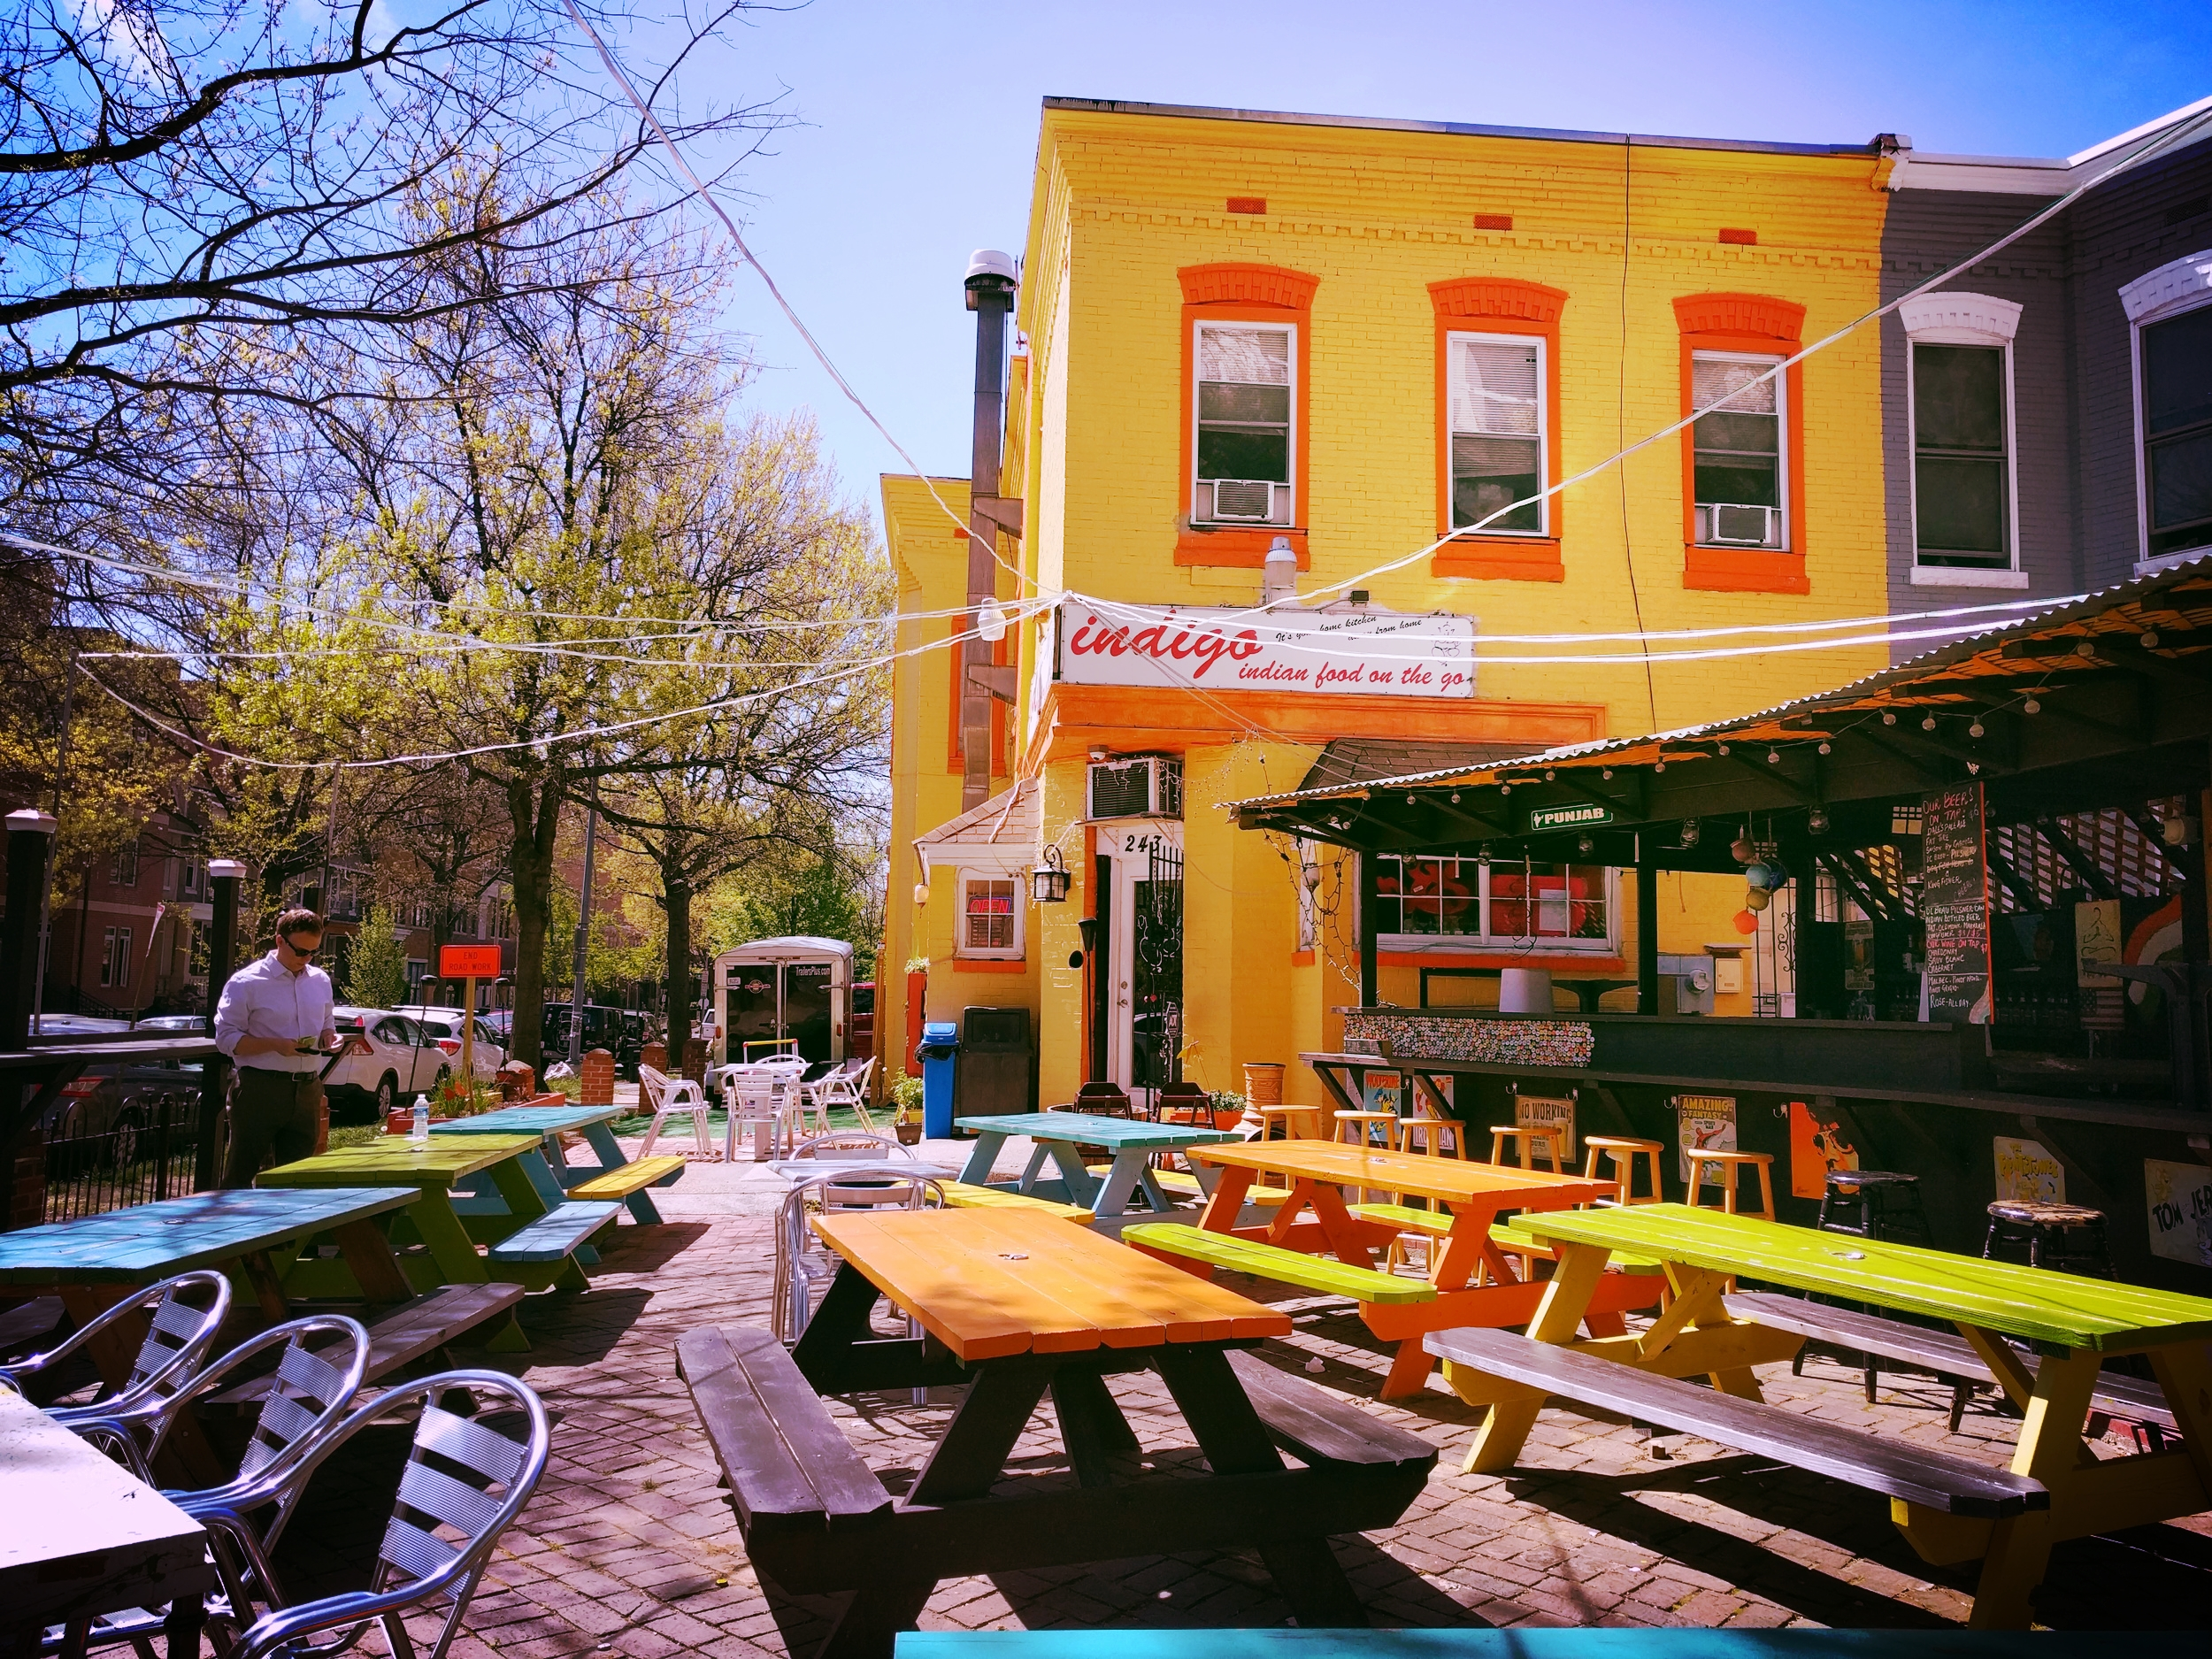 Indigo – Family-run Indian food with a quirky and colorful outside bar and seating. -